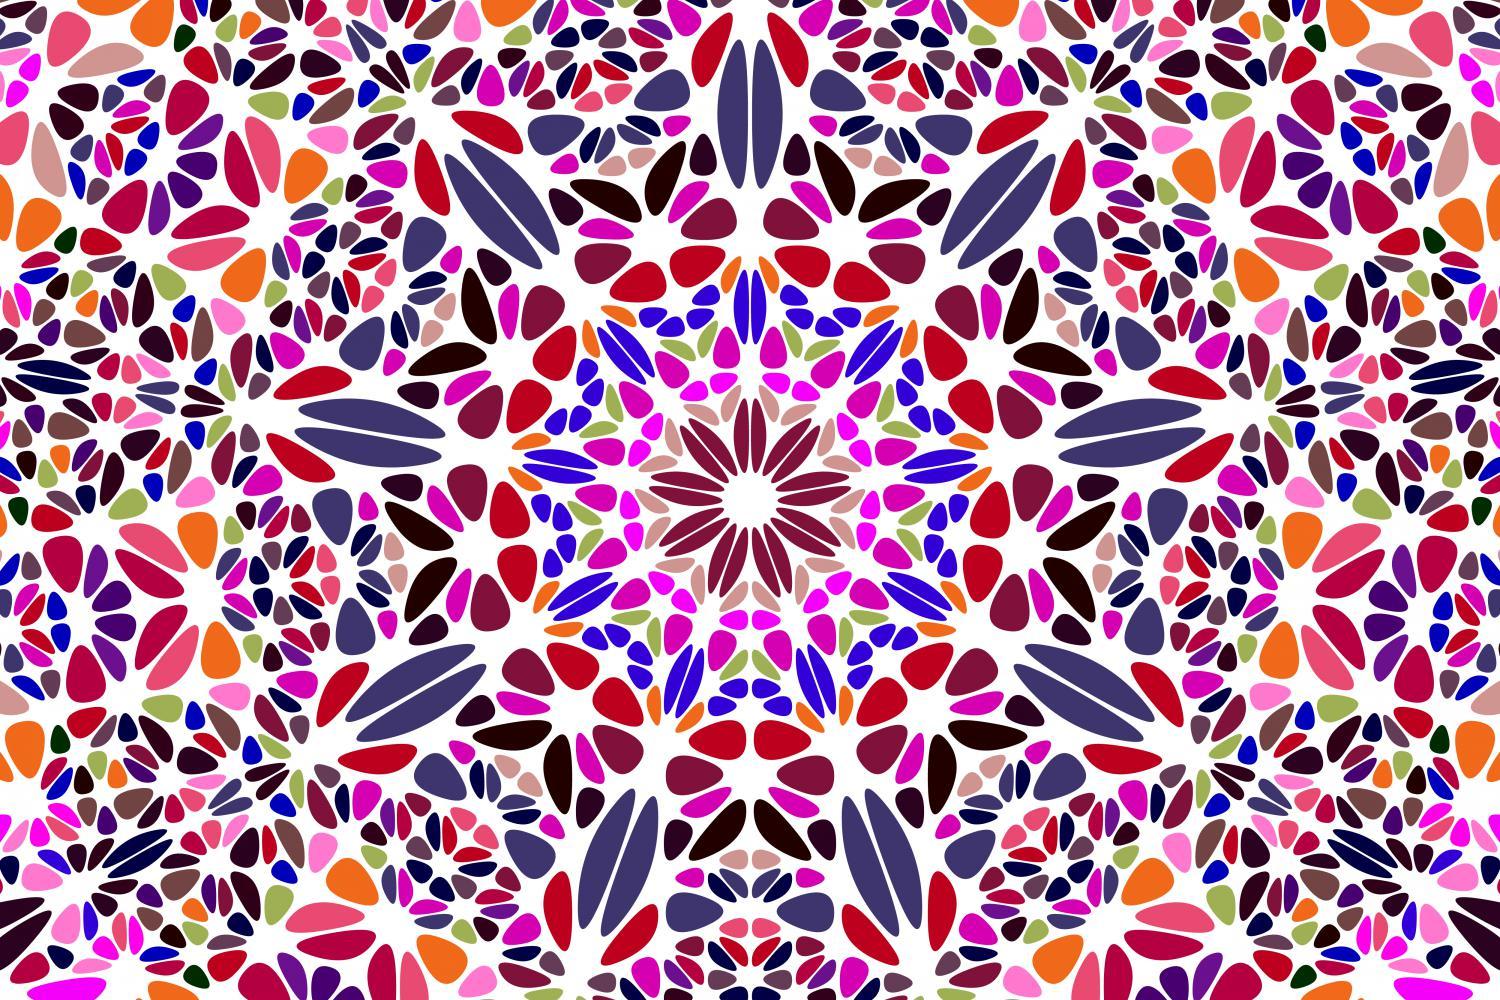 48 Floral Mandala Backgrounds example image 24